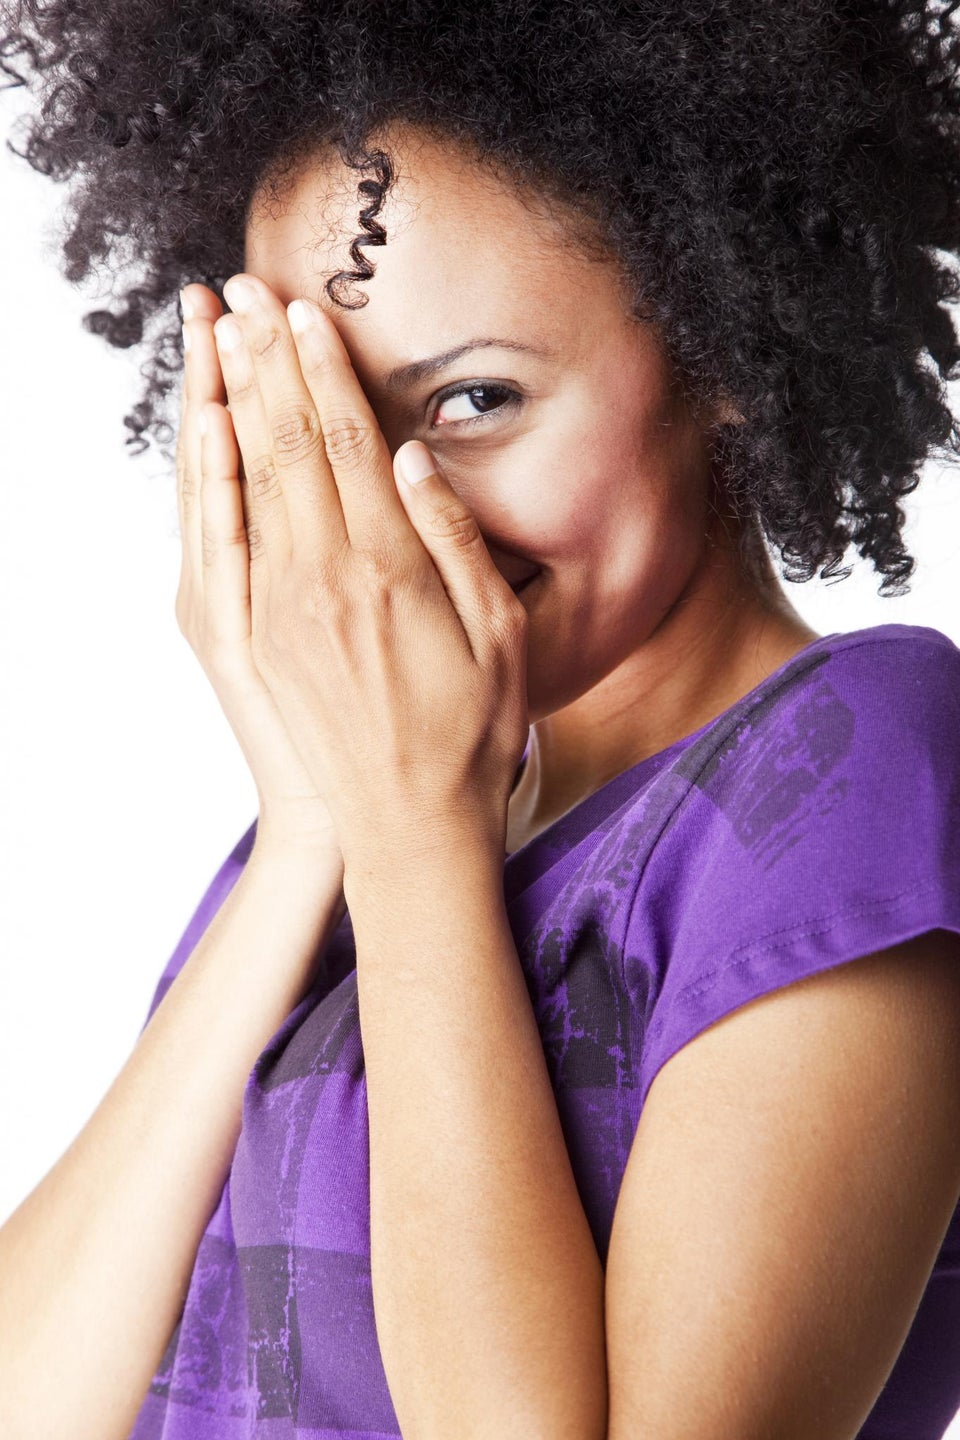 Intimacy Intervention: How Can I Get Some '50 Shades Of Grey' Action With My Husband?